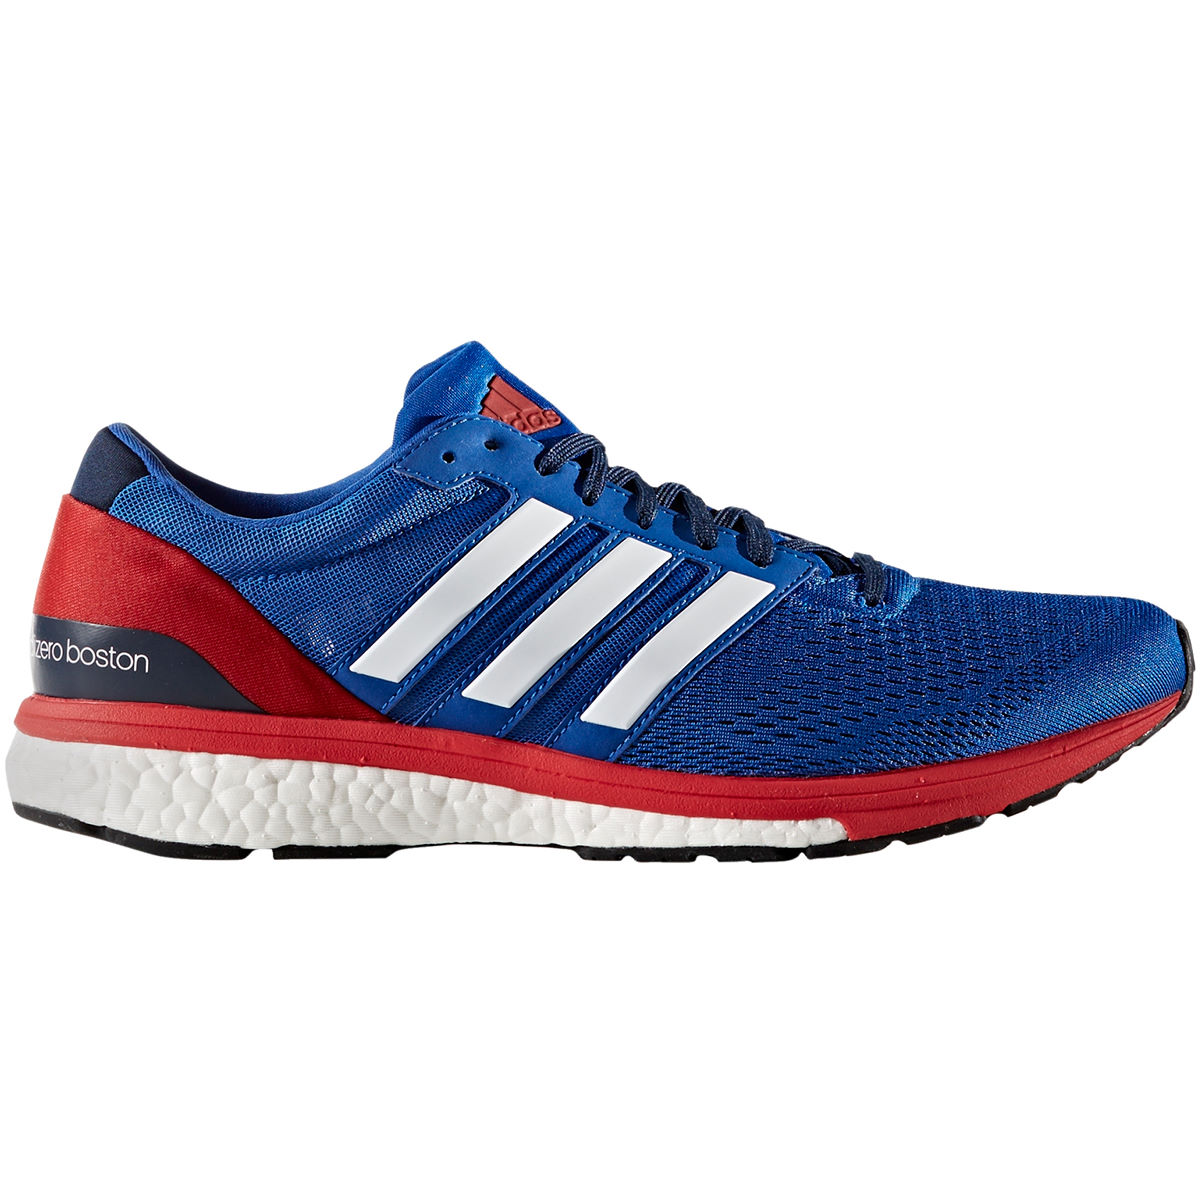 Adidas Boston Shoes Reviews